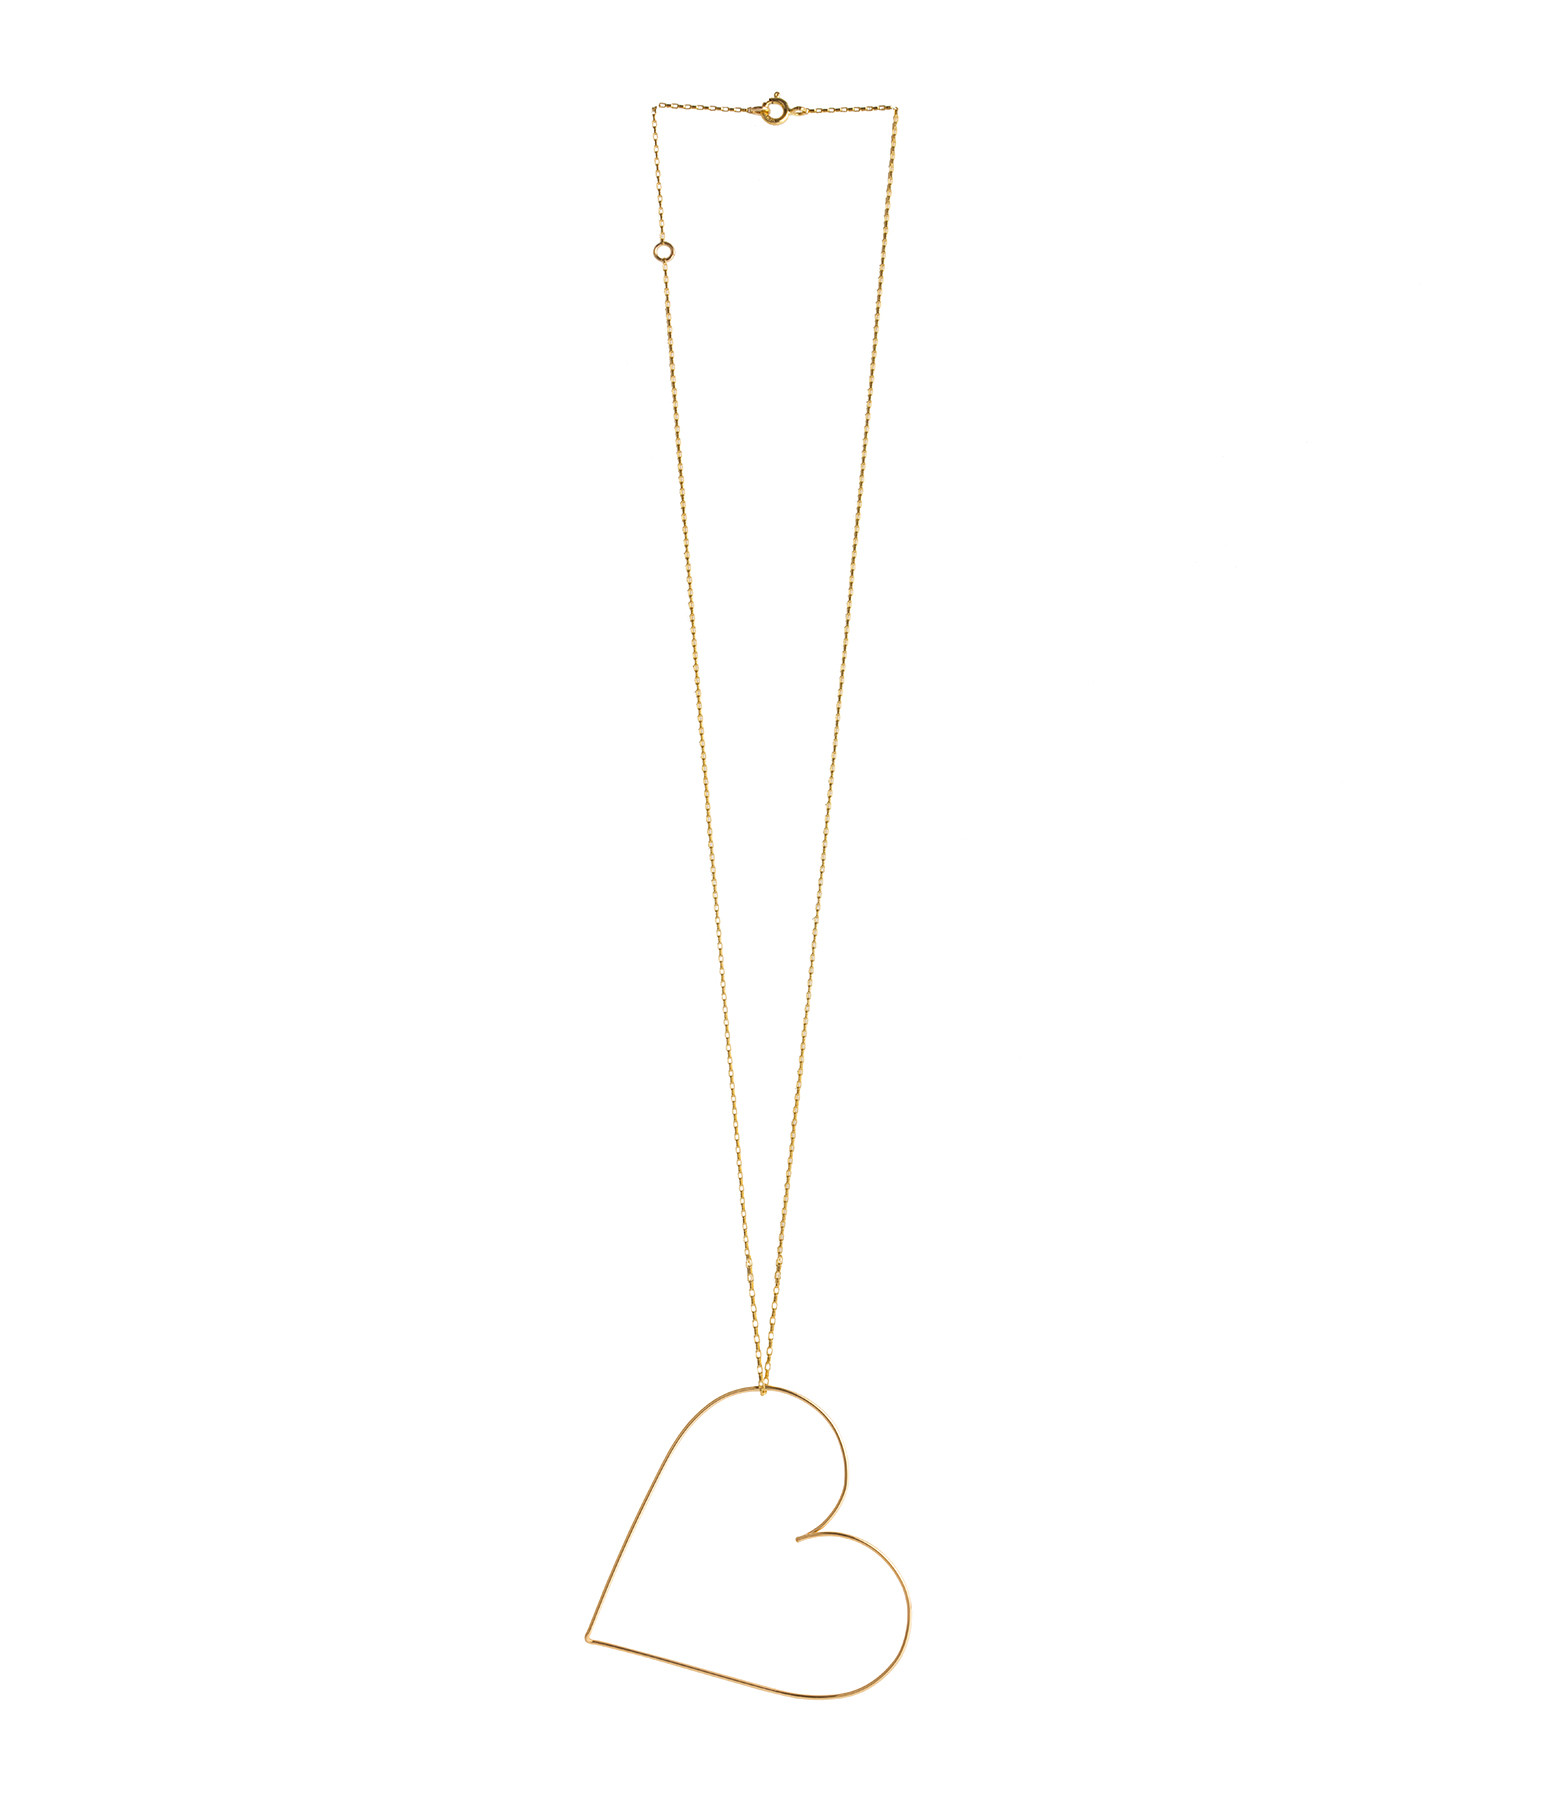 ATELIER PAULIN - Collier Mini Coeur Nude Gold Filled 14K